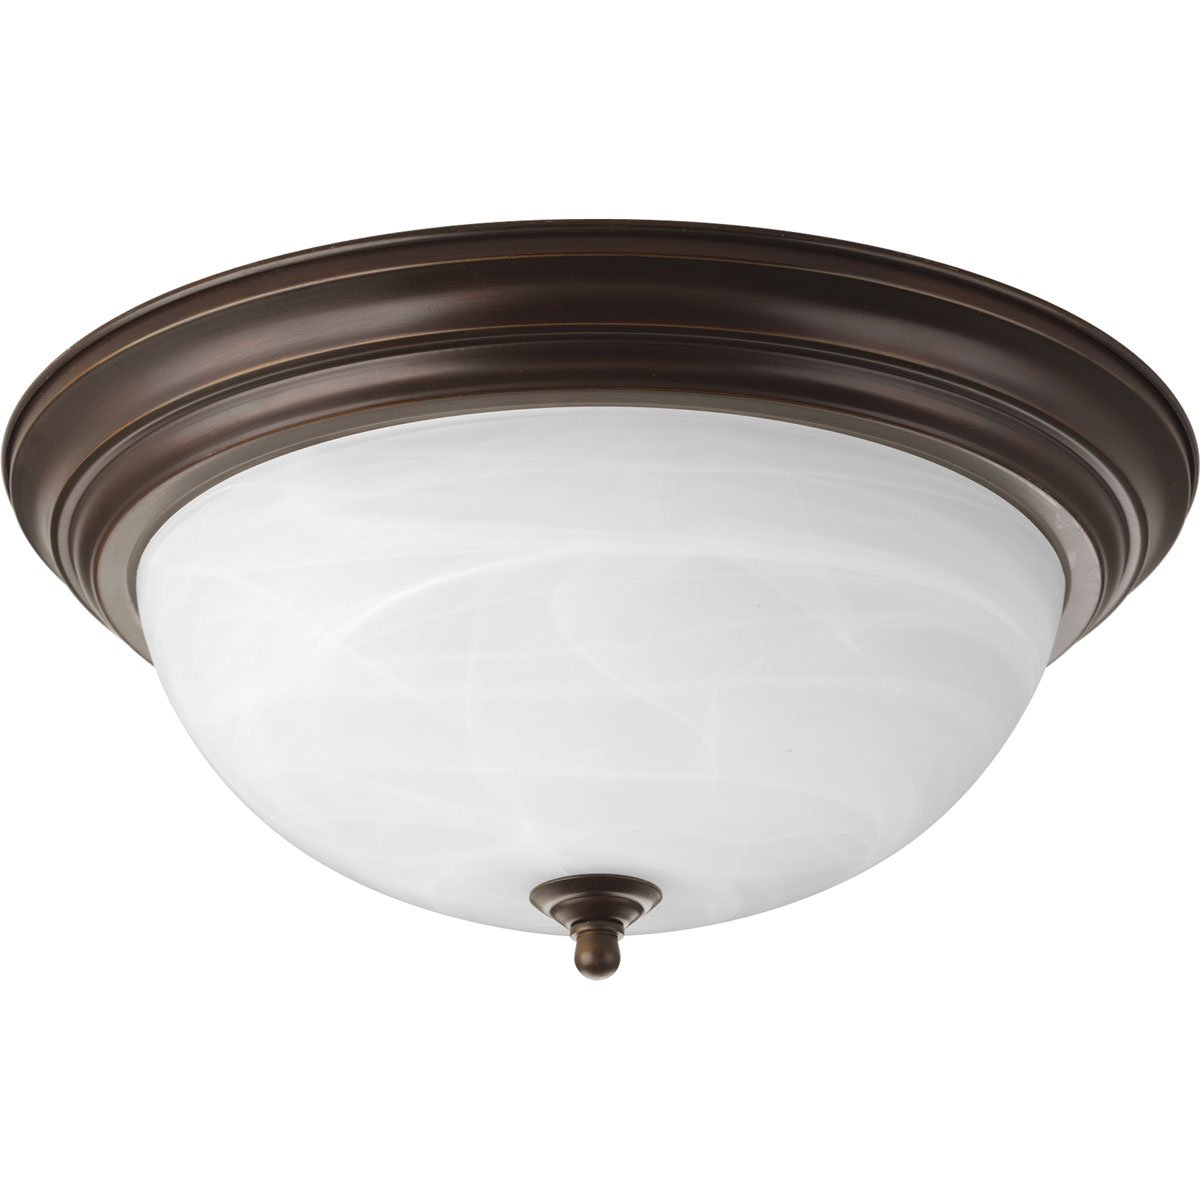 Progress Lighting P3926-20 3-Light Flushmount, Antique Bronze by Progress Lighting